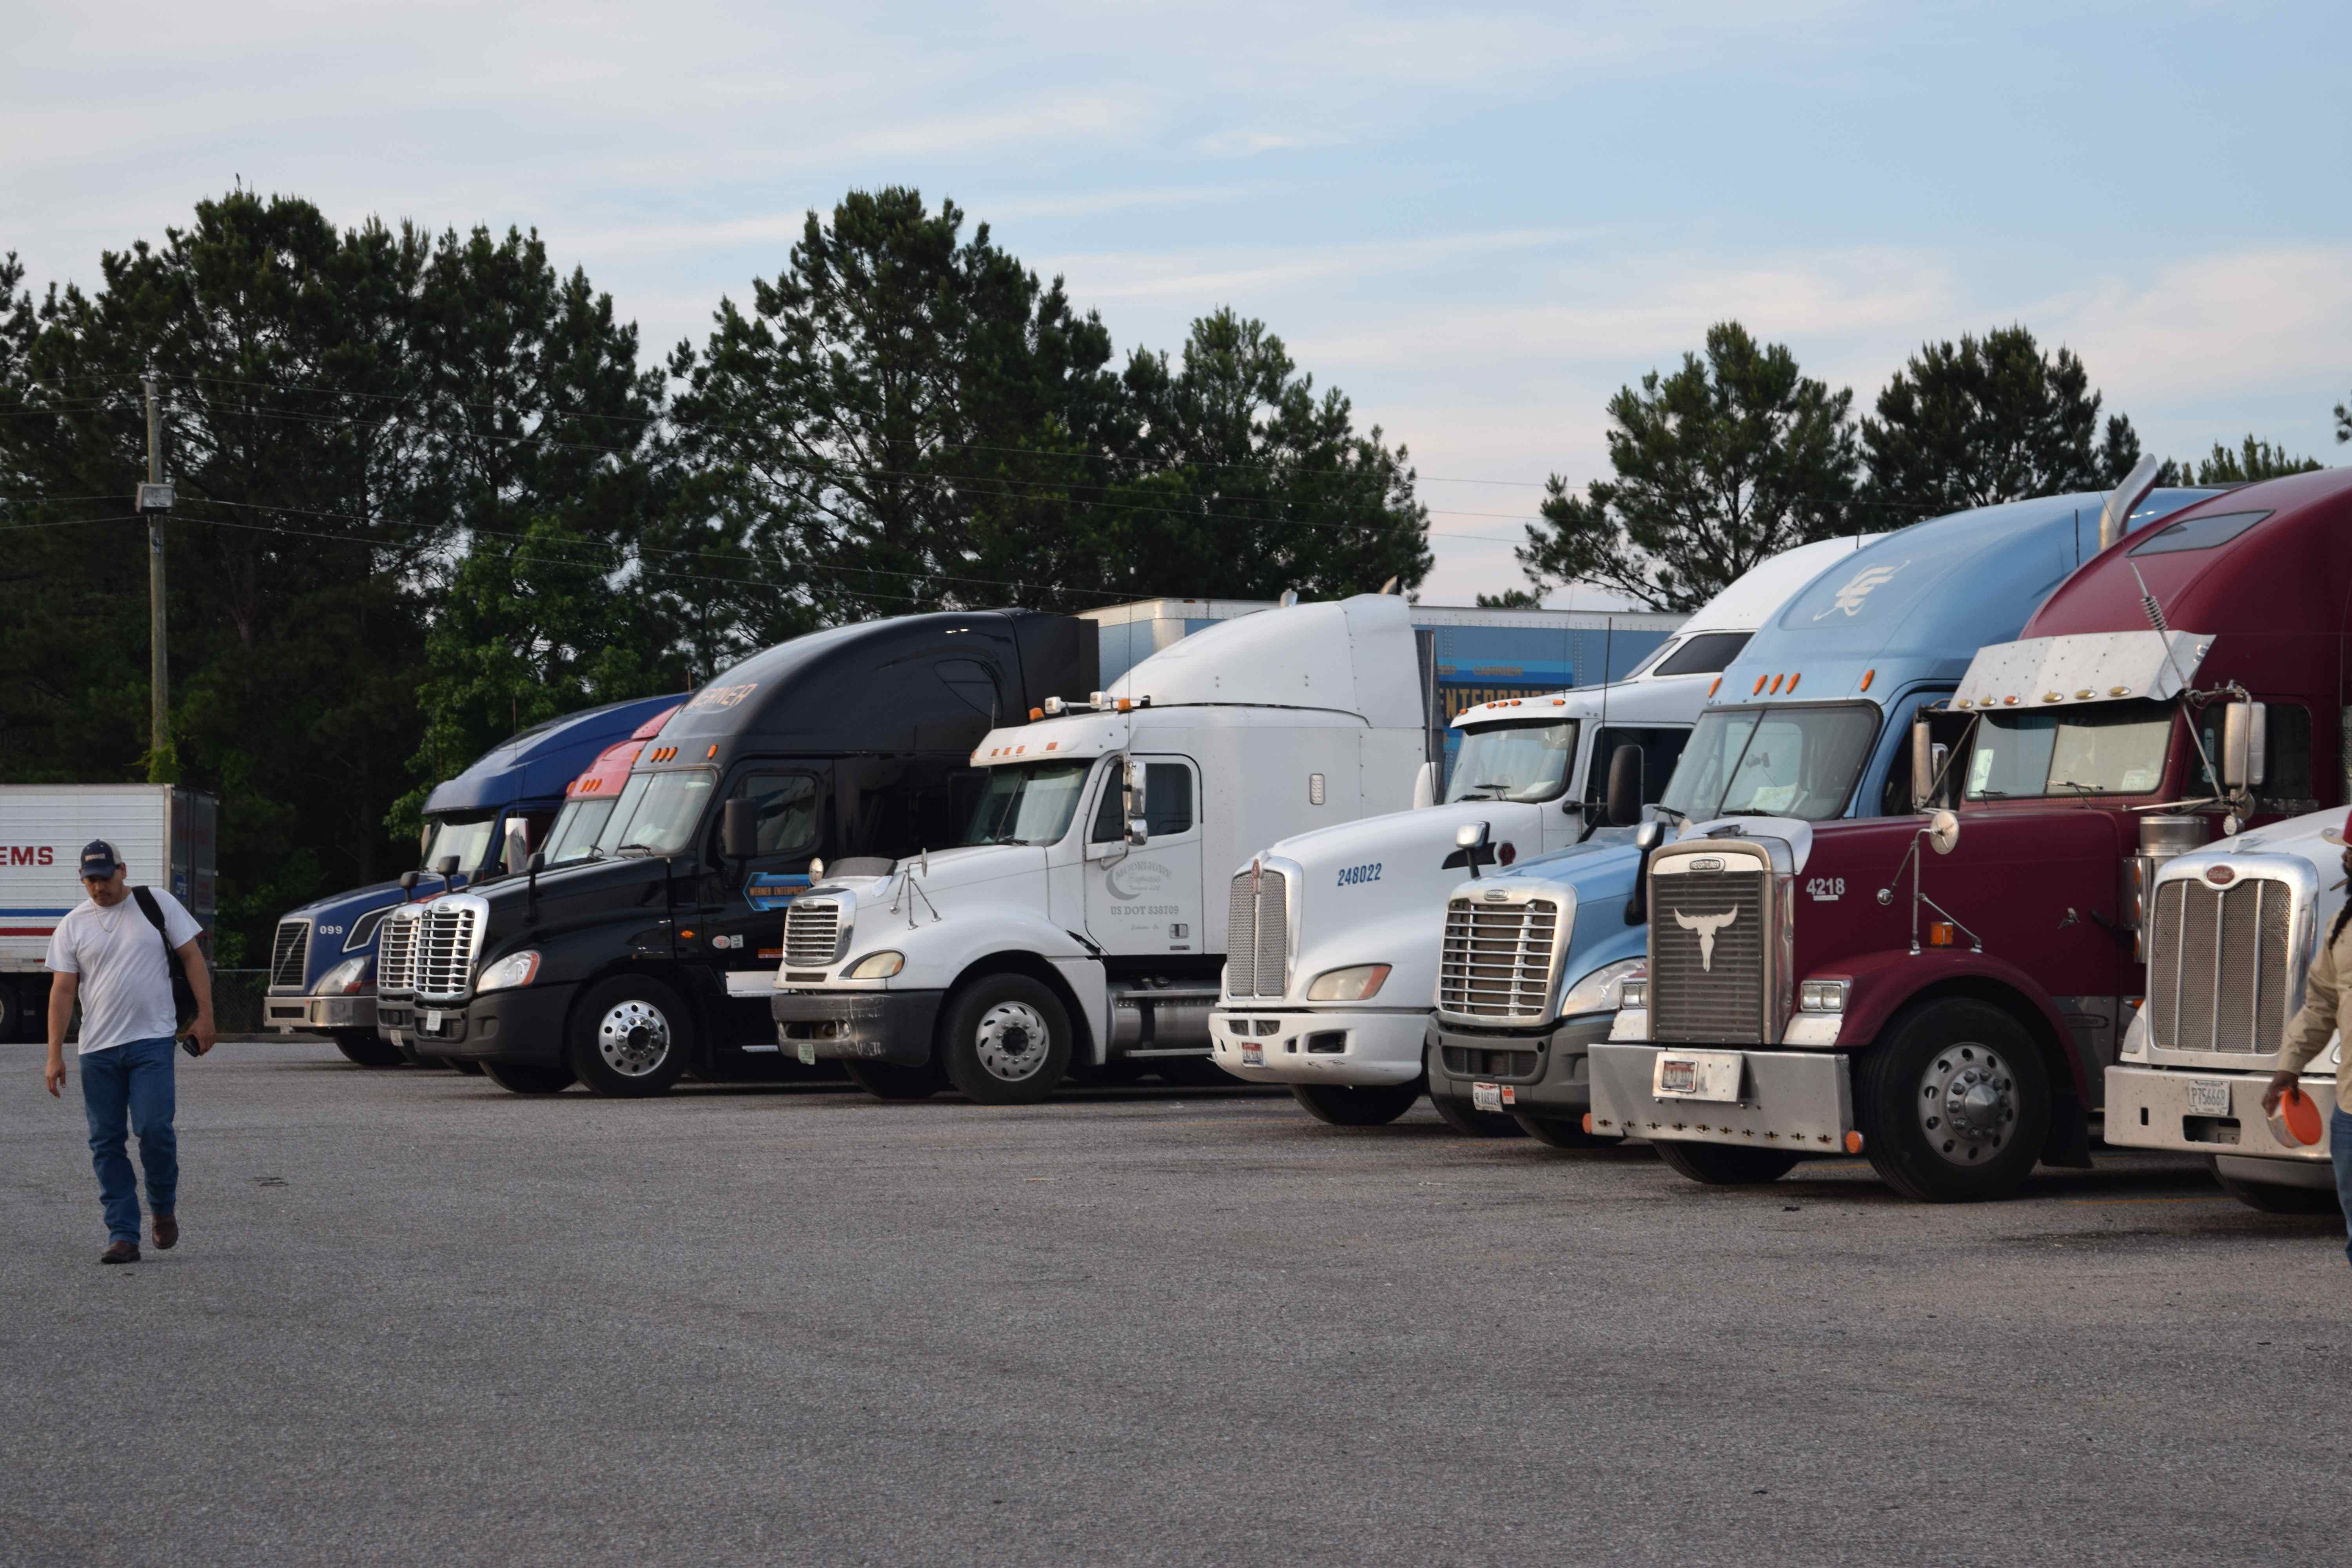 ATRI surveying truckers on parking in North Carolina